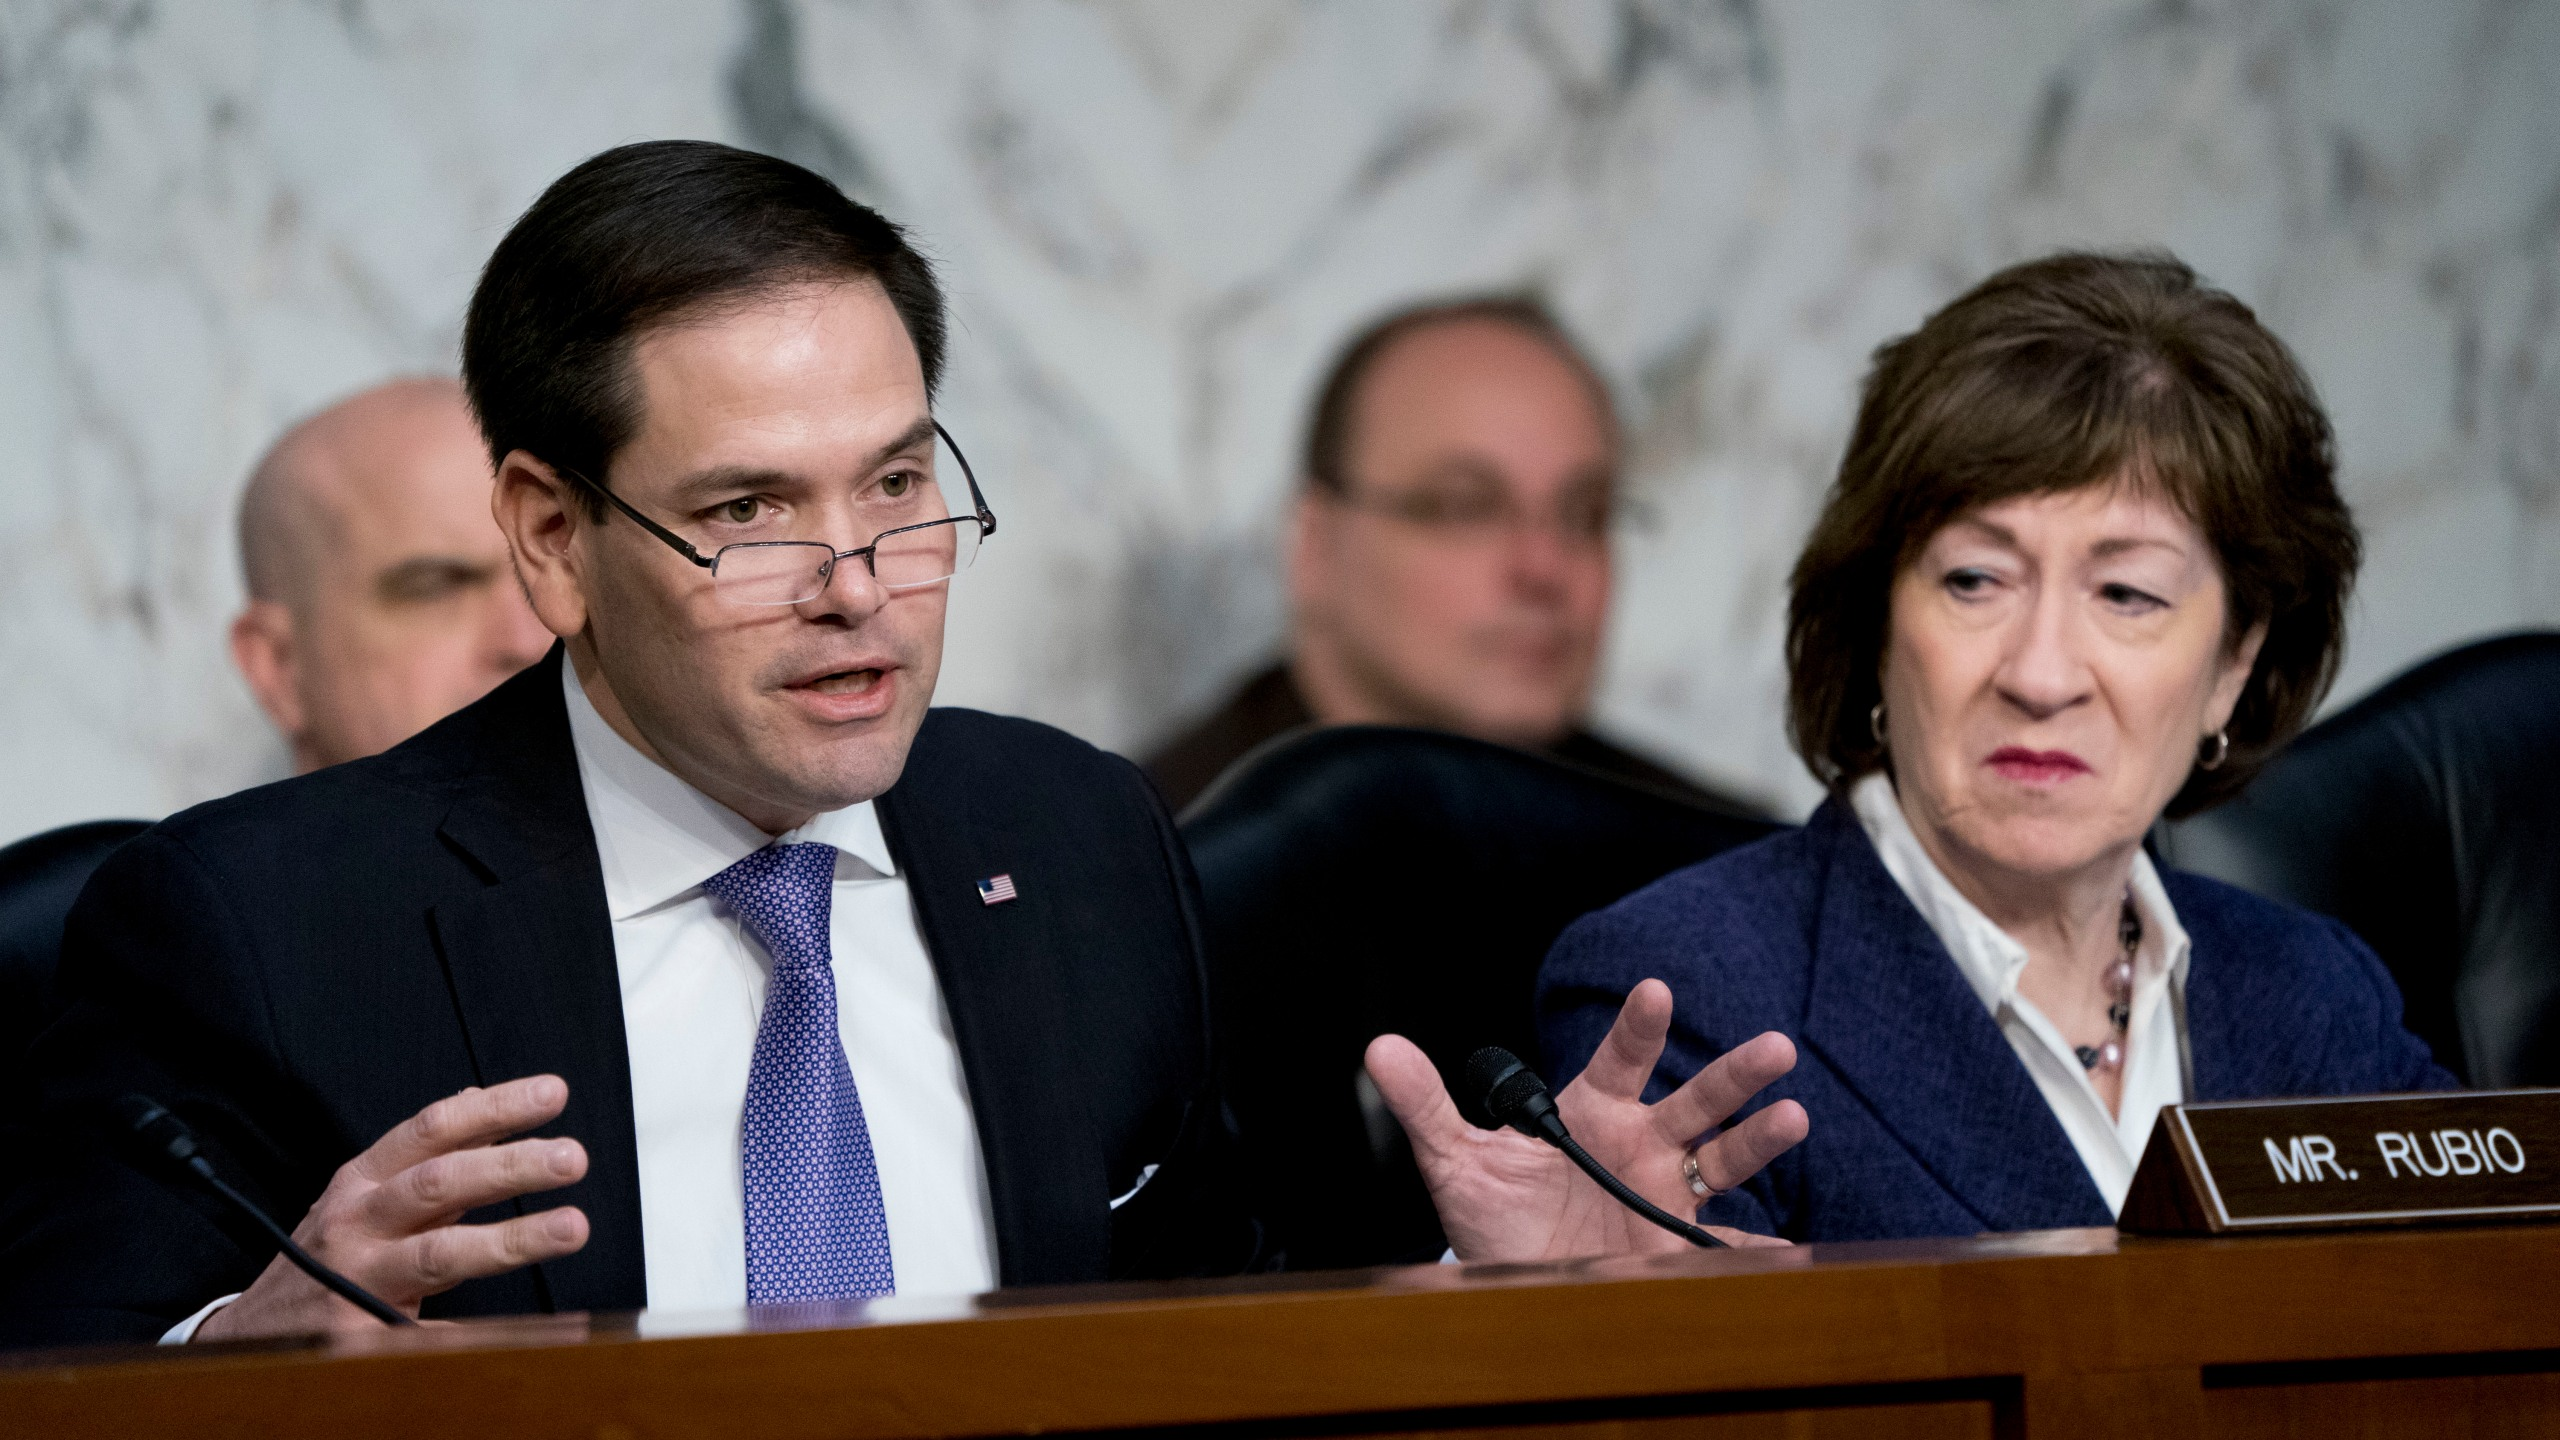 FILE - In this March 21, 2018 file photo, Sen. Marco Rubio, R-Fla., left, accompanied by Sen. Susan Collins, R-Maine,right, speaks before a Senate Intelligence Committee hearing on election security on Capitol Hill in Washington. The Senate intelligence committee has concluded that the Kremlin launched an aggressive effort to interfere in the 2016 presidential contest on behalf of Donald Trump. The Republican-led panel on Tuesday released its fifth and final report in its investigation into election interference. (AP Photo/Andrew Harnik)